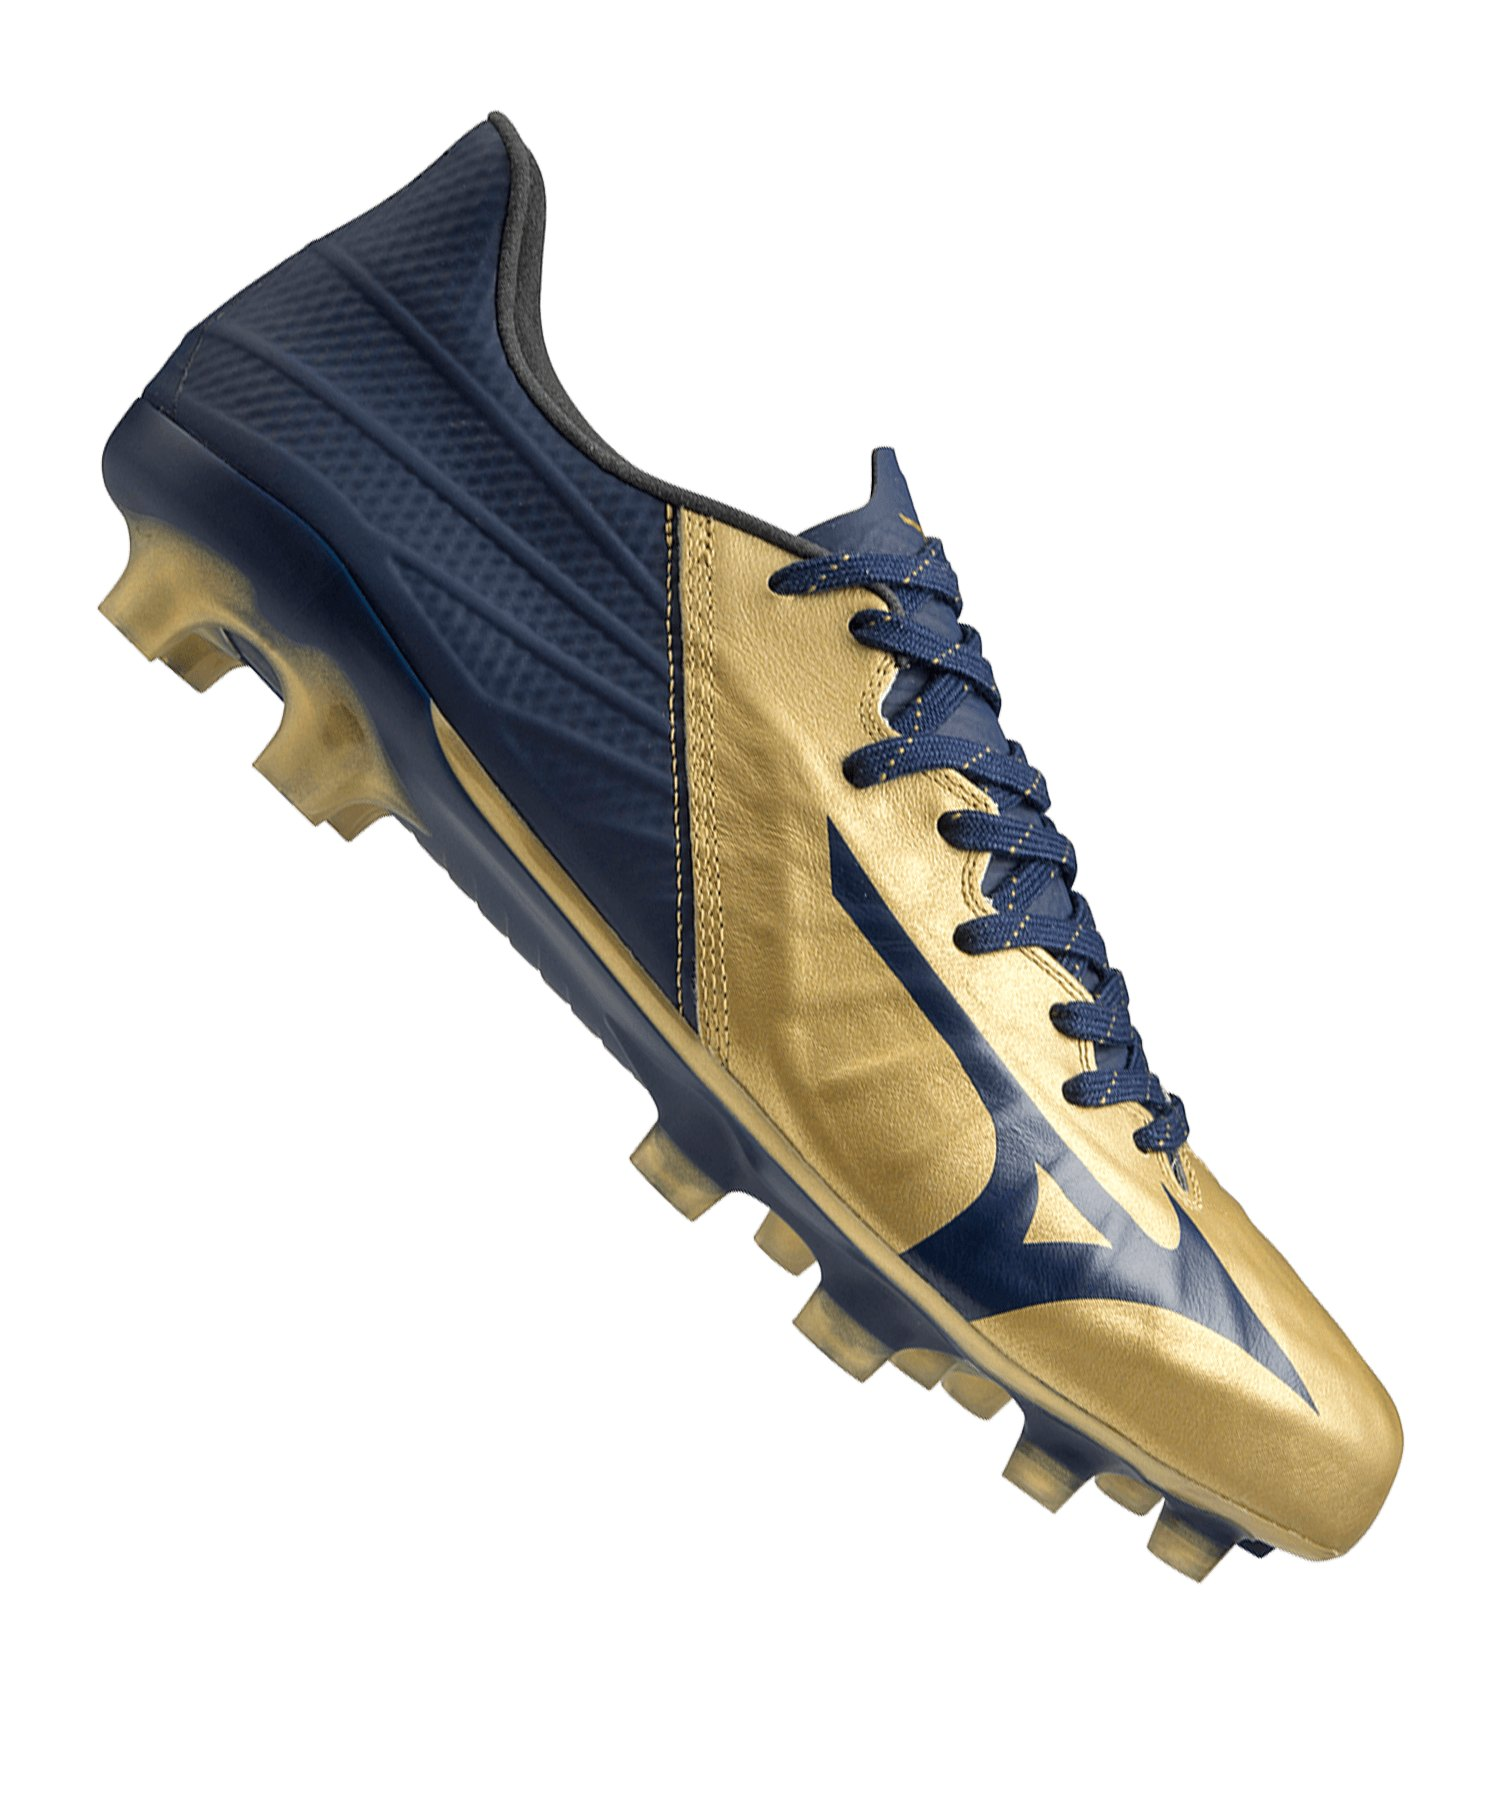 Mizuno Rebula 3 Made in Japan FG Gold Blau F14 - gold